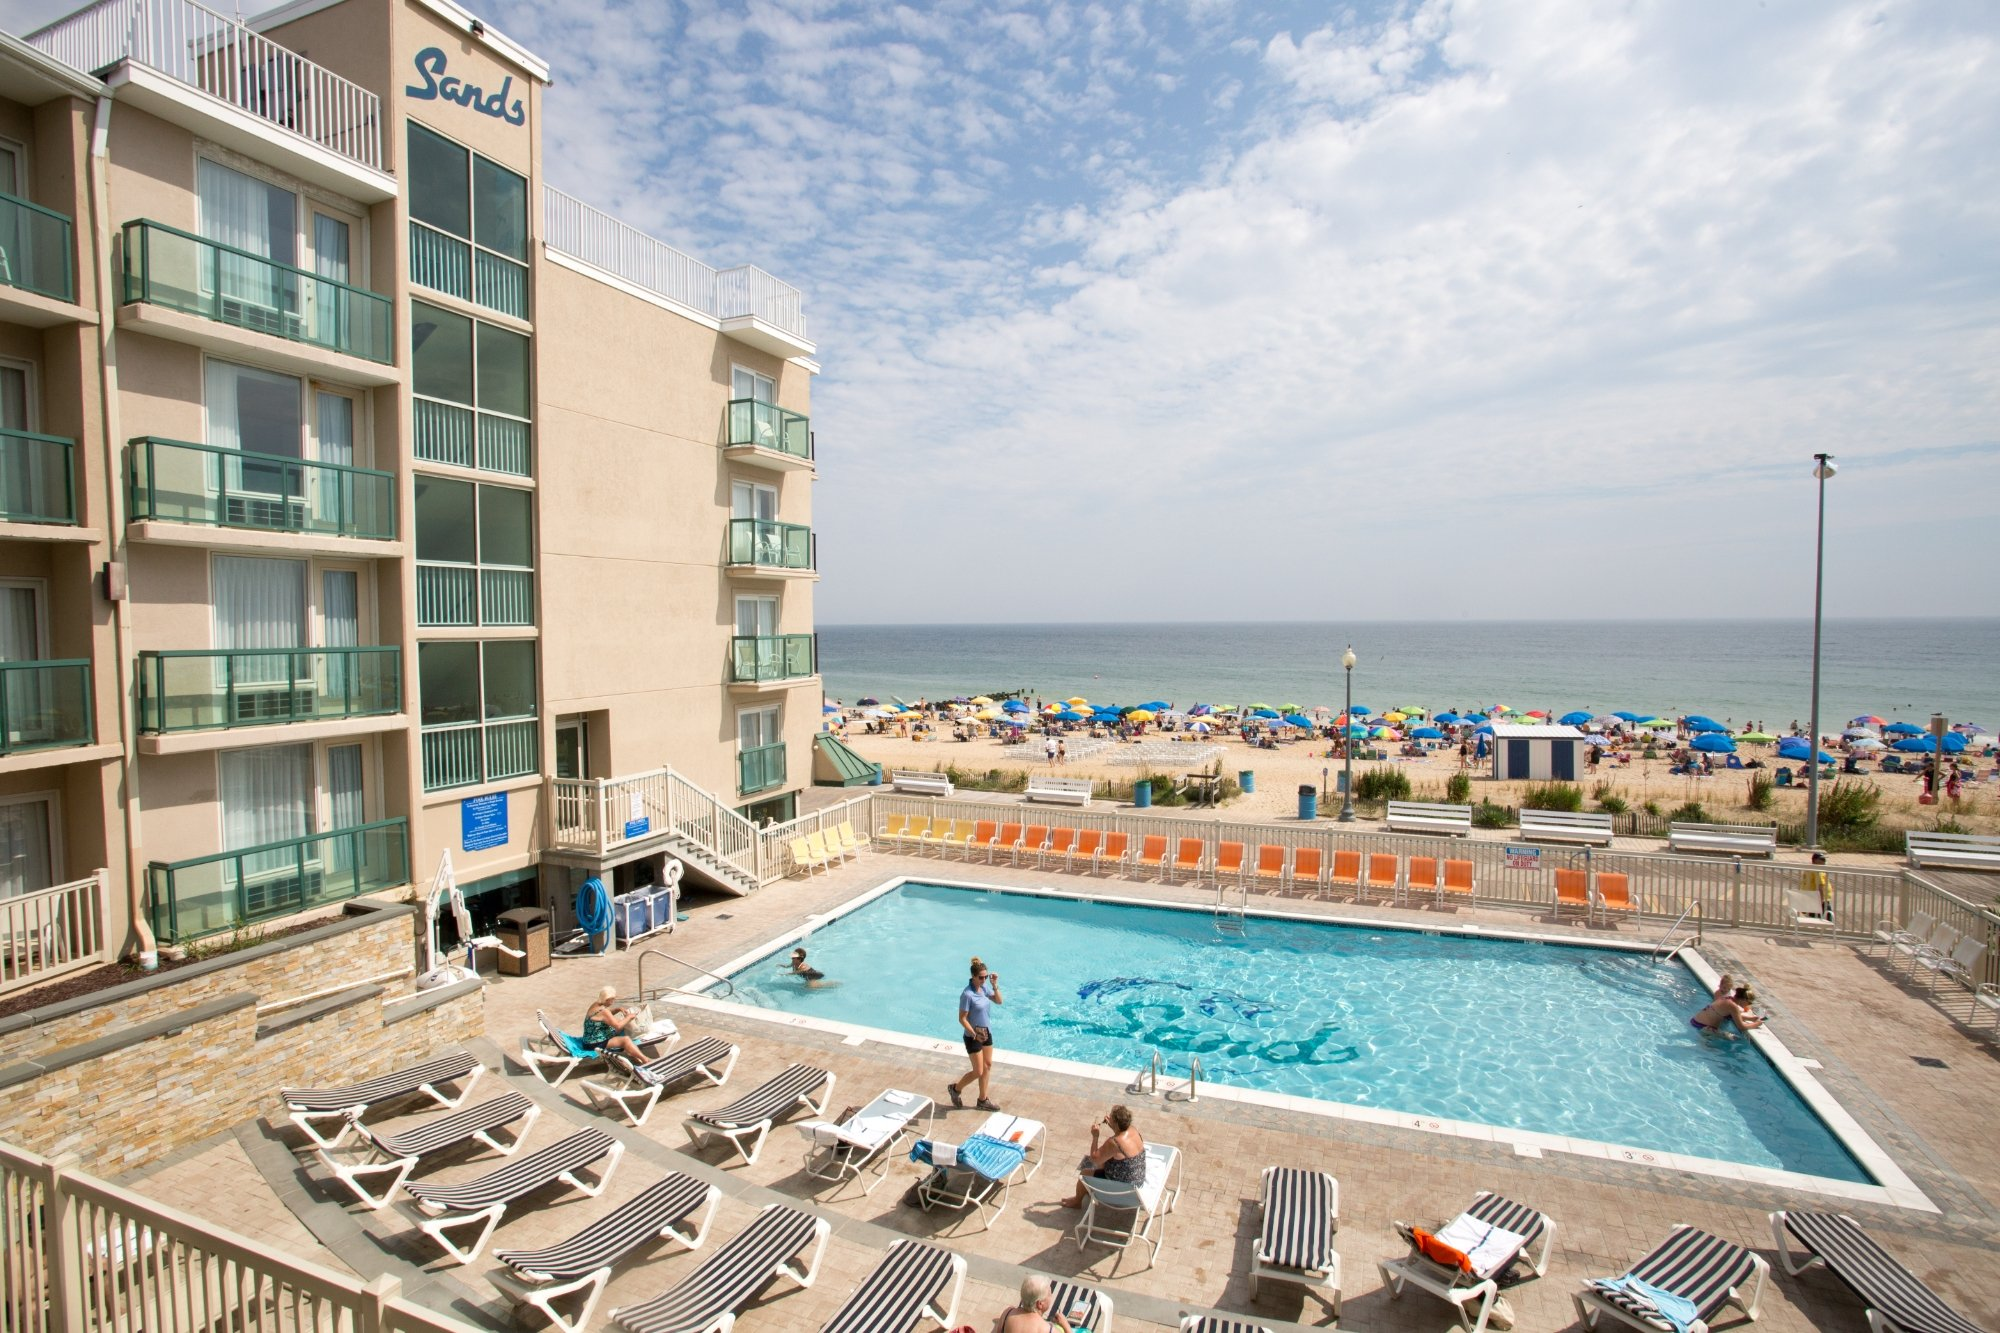 Atlantic Sands Hotel & Conference Center